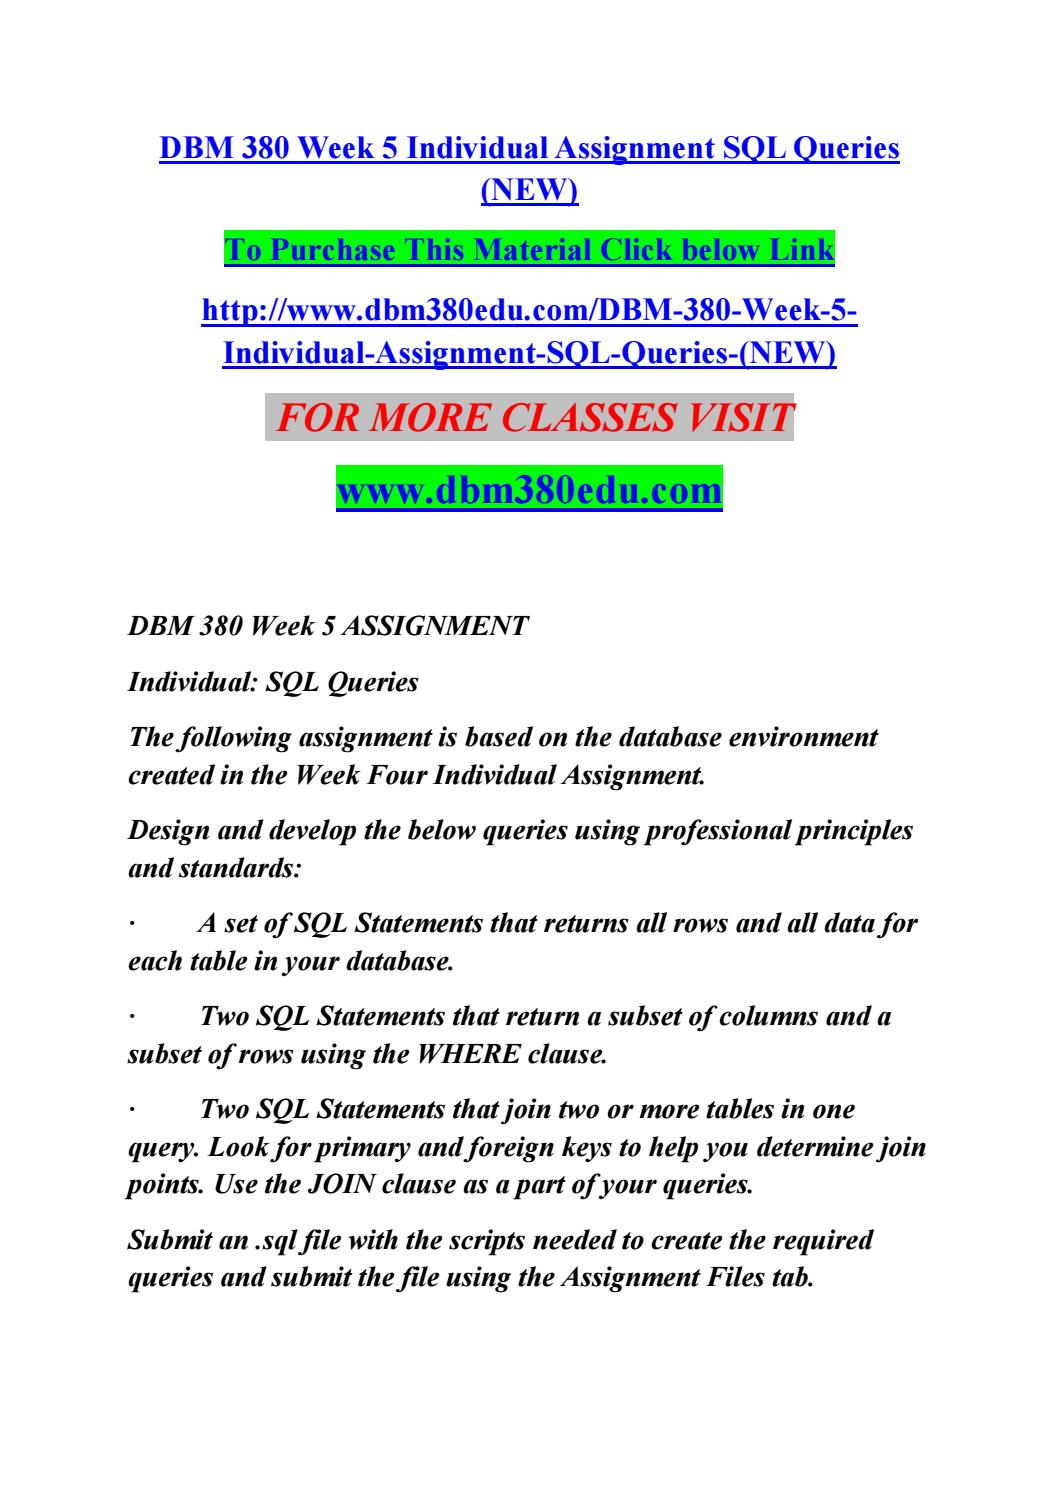 dbm week individual assignment sql queries new by singht dbm 380 week 5 individual assignment sql queries new by singht rock issuu